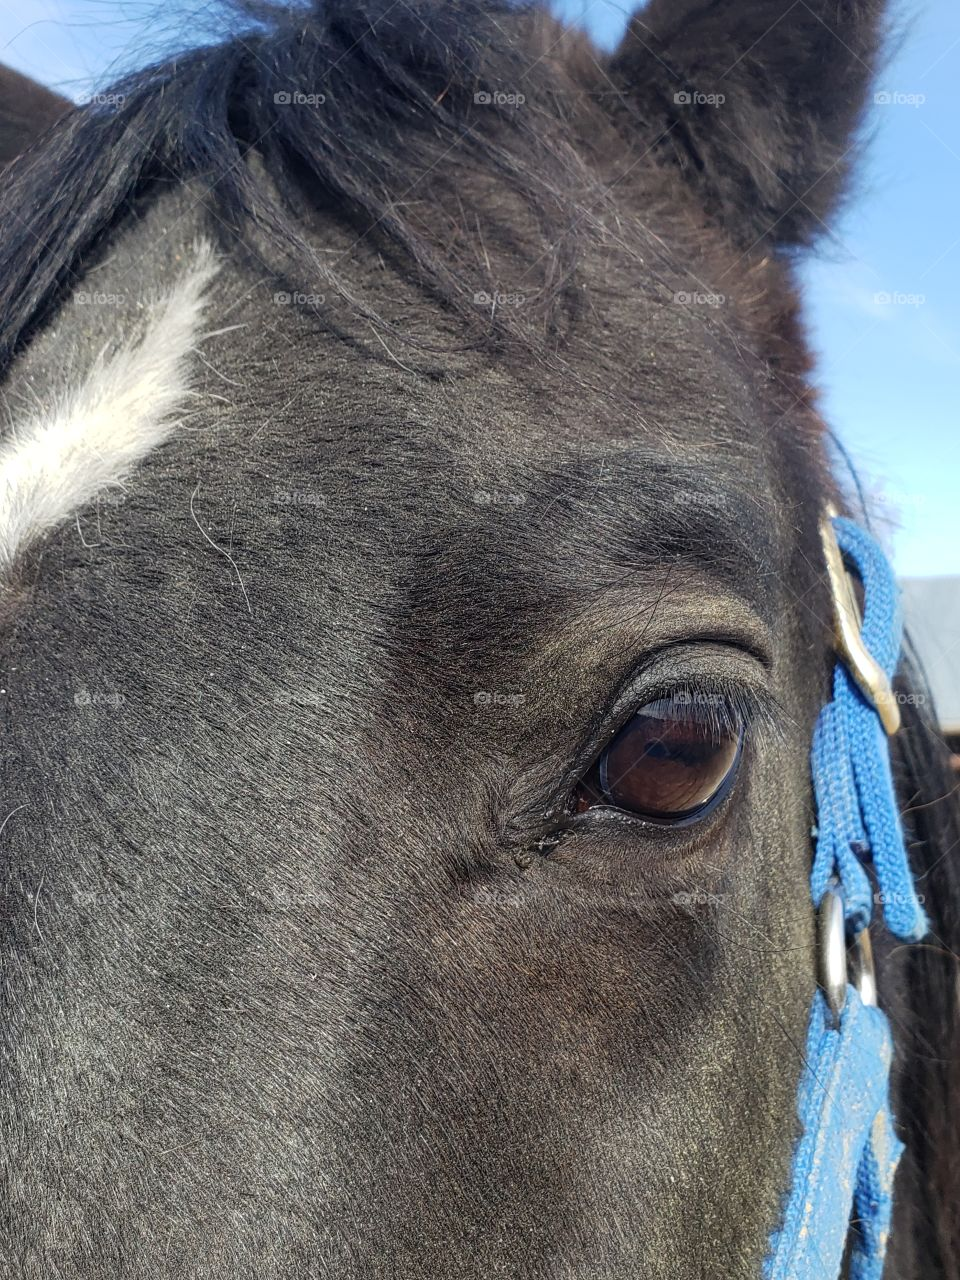 black horse eye shot